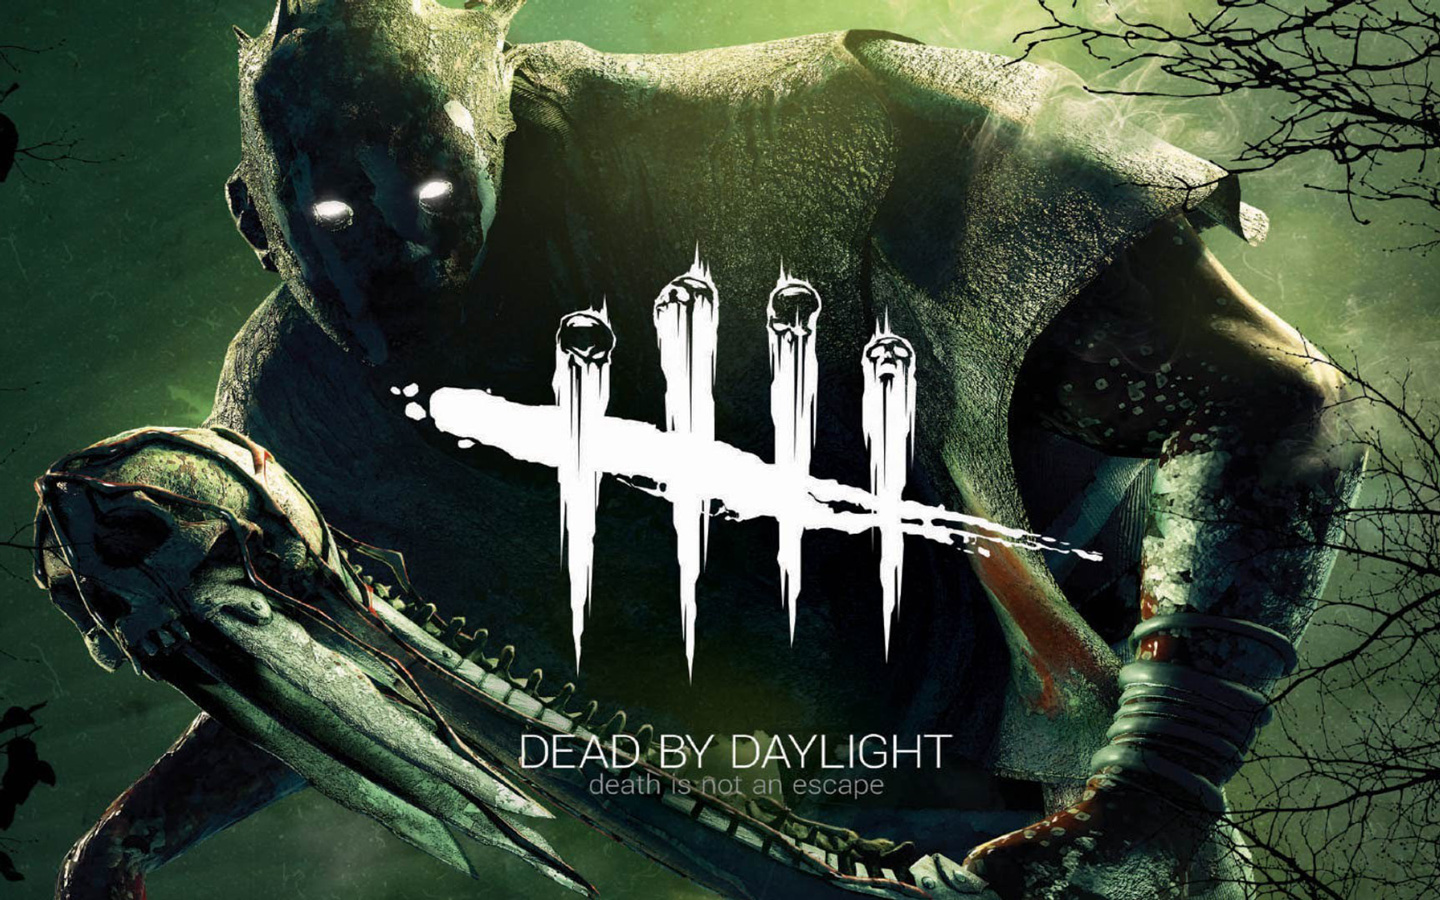 Free Dead by Daylight Wallpaper in 1440x900